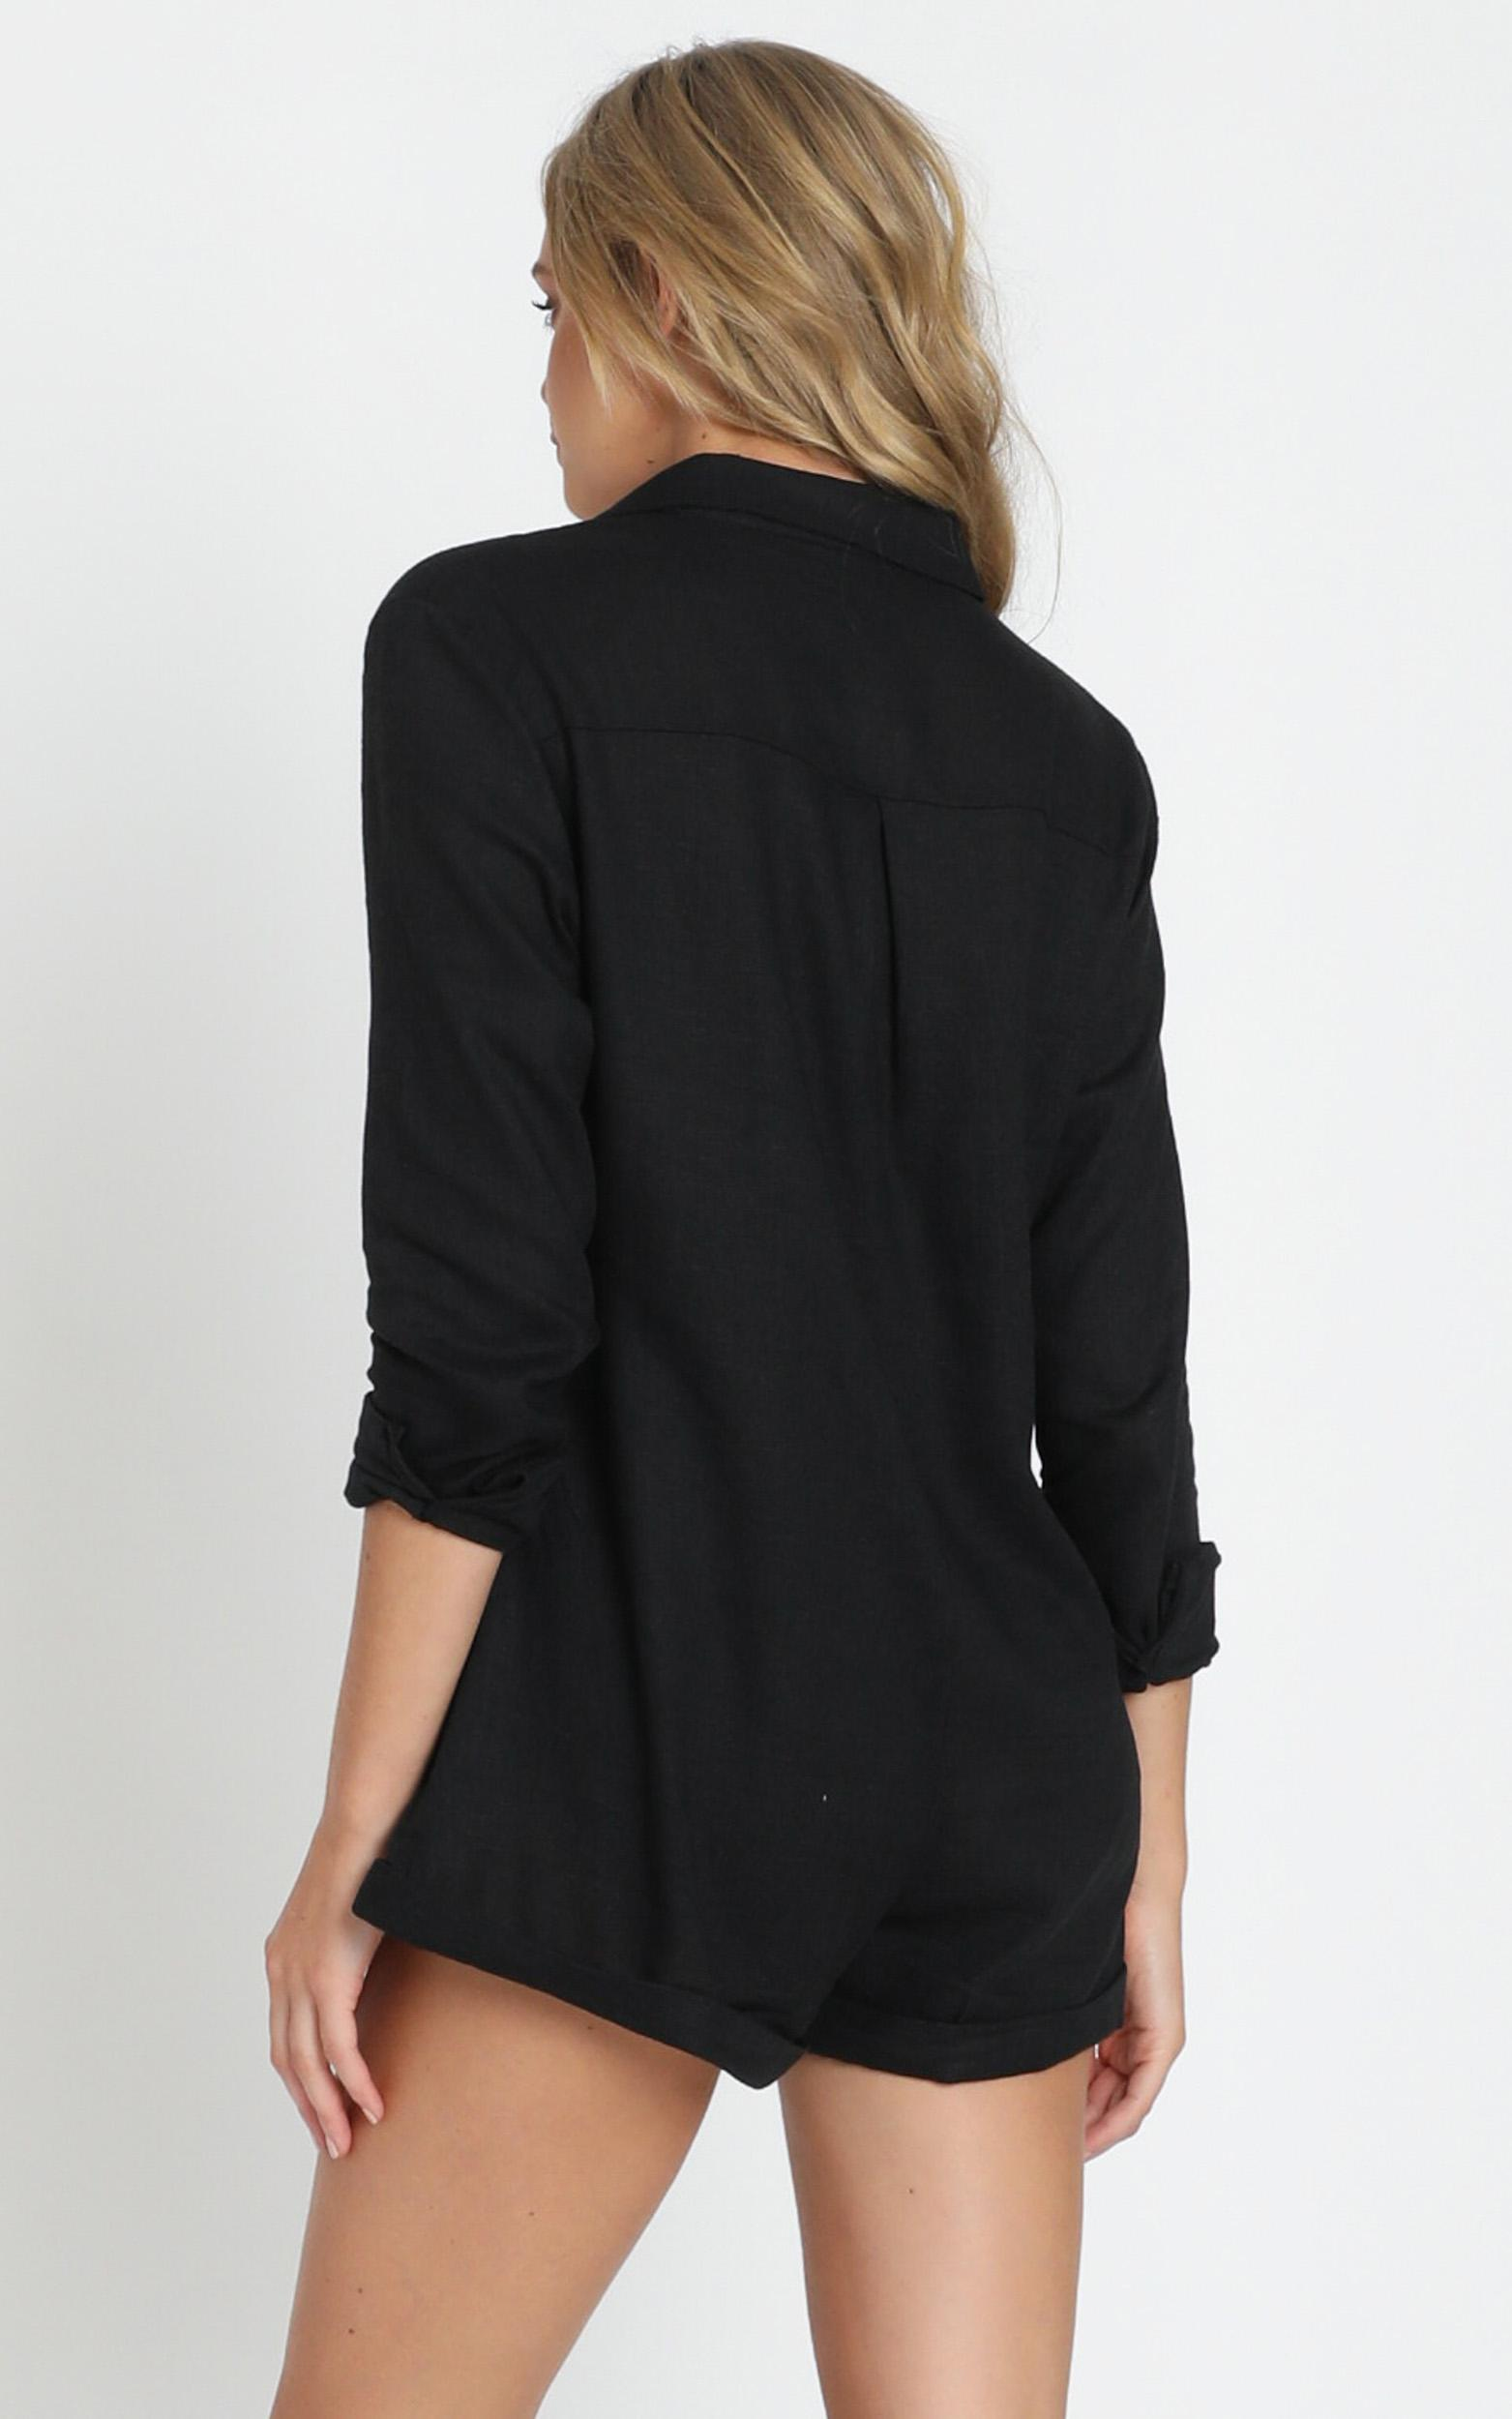 Island Time Playsuit In Black Linen Look - 4 (XXS), Black, hi-res image number null